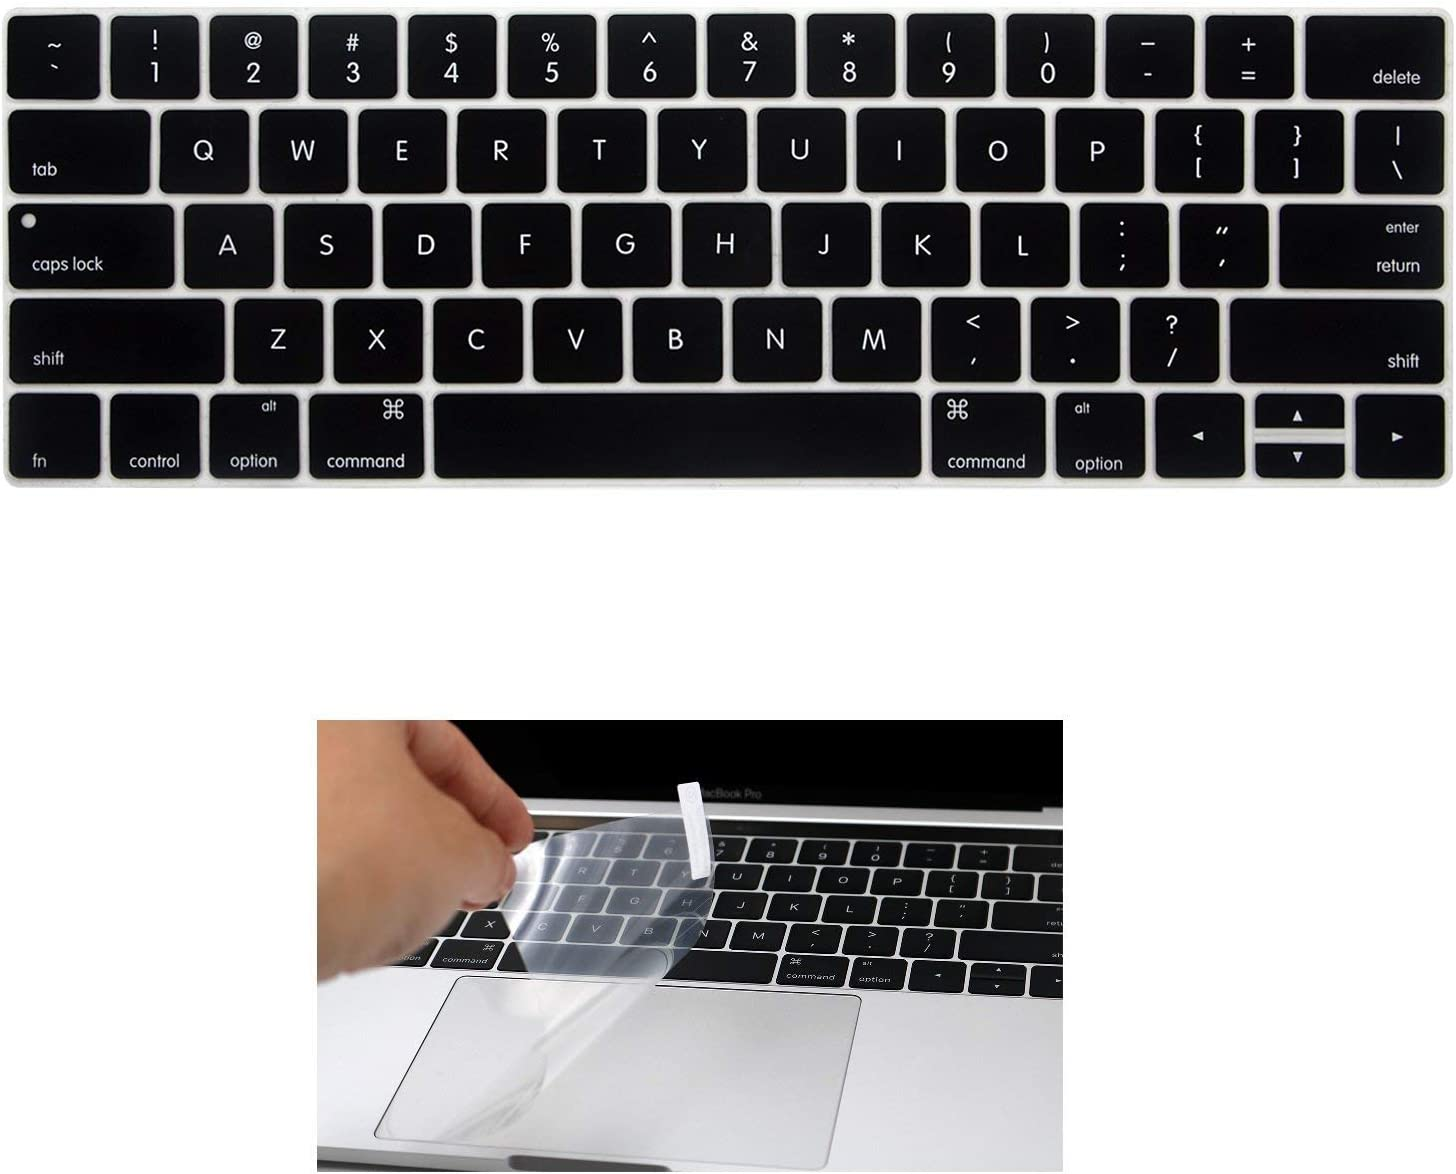 """Applefuns Laptop MacBook a1706 Silicone Keyboard Cover Skin and Touchpad Protector for MacBook New Pro 13"""" with Touch Bar(2016.10 Release,Model A1706)- Black"""